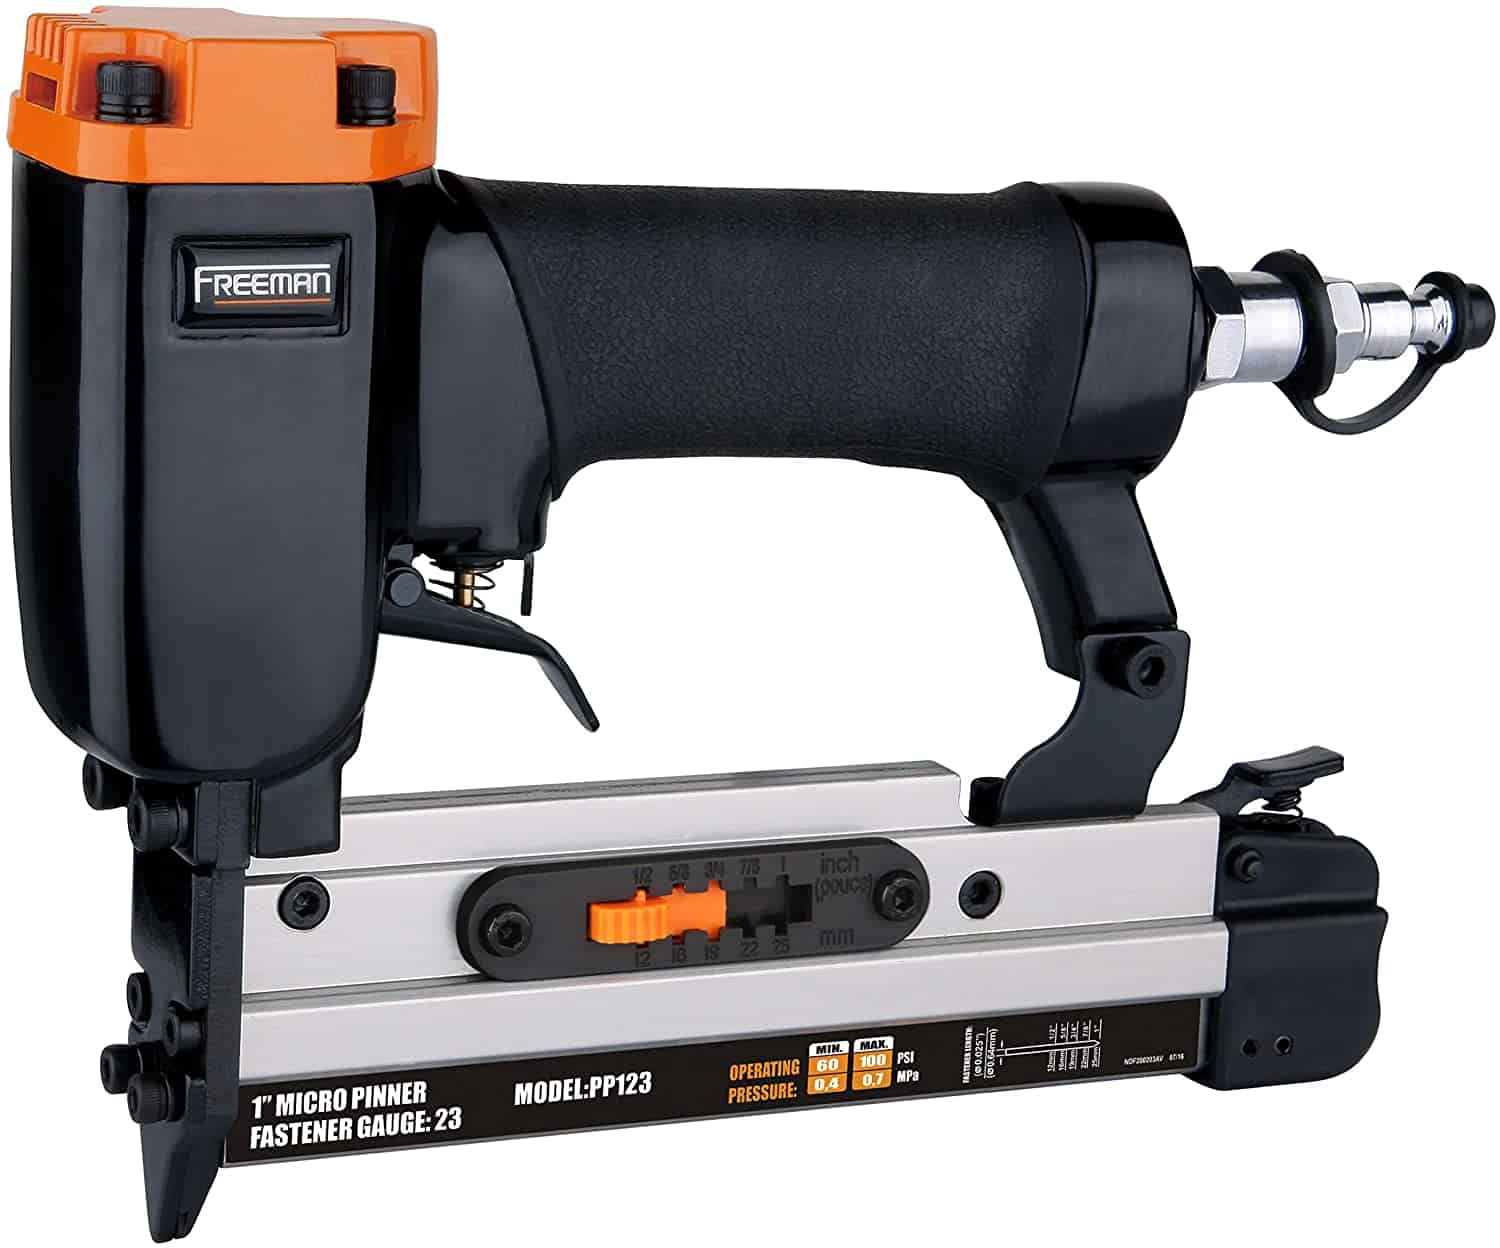 Freeman PP123 Pneumatic 23-Gauge 1 Micro Pinner Ergonomic and Lightweight Nail Gun with Safety Trigger and Pin Size Selector